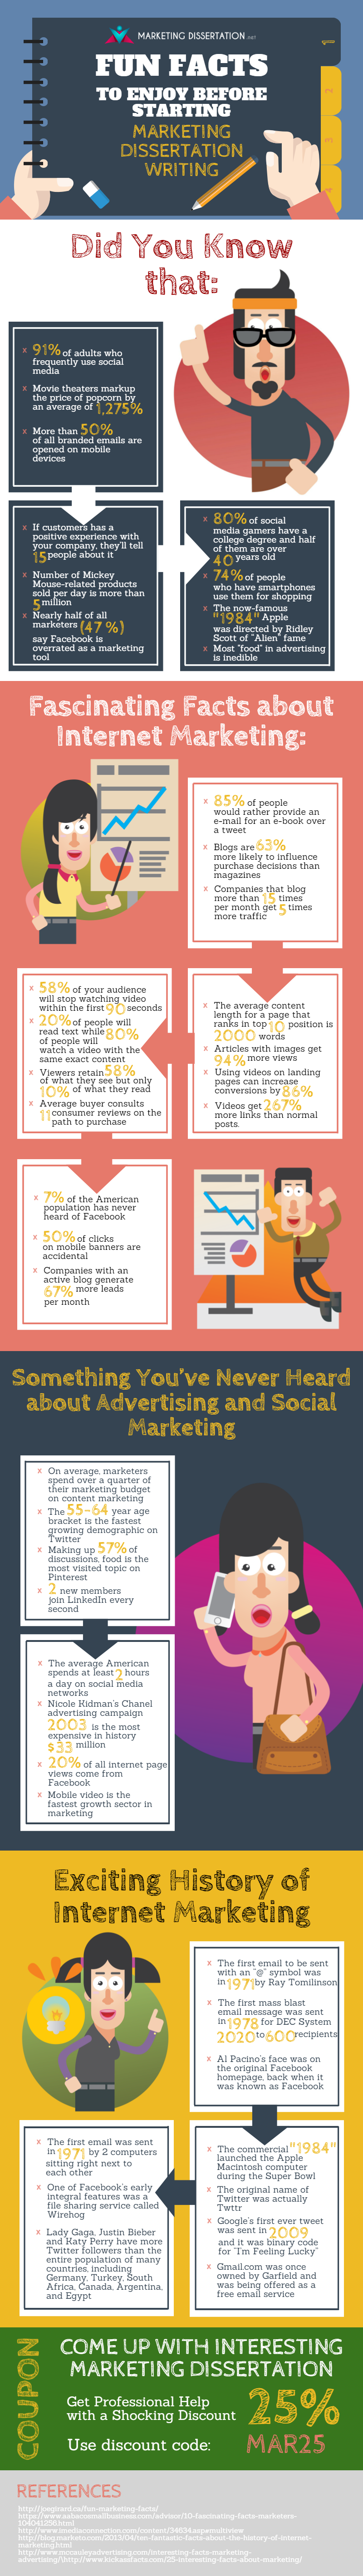 Fun Facts on Marketing Dissertation Writing #infographic